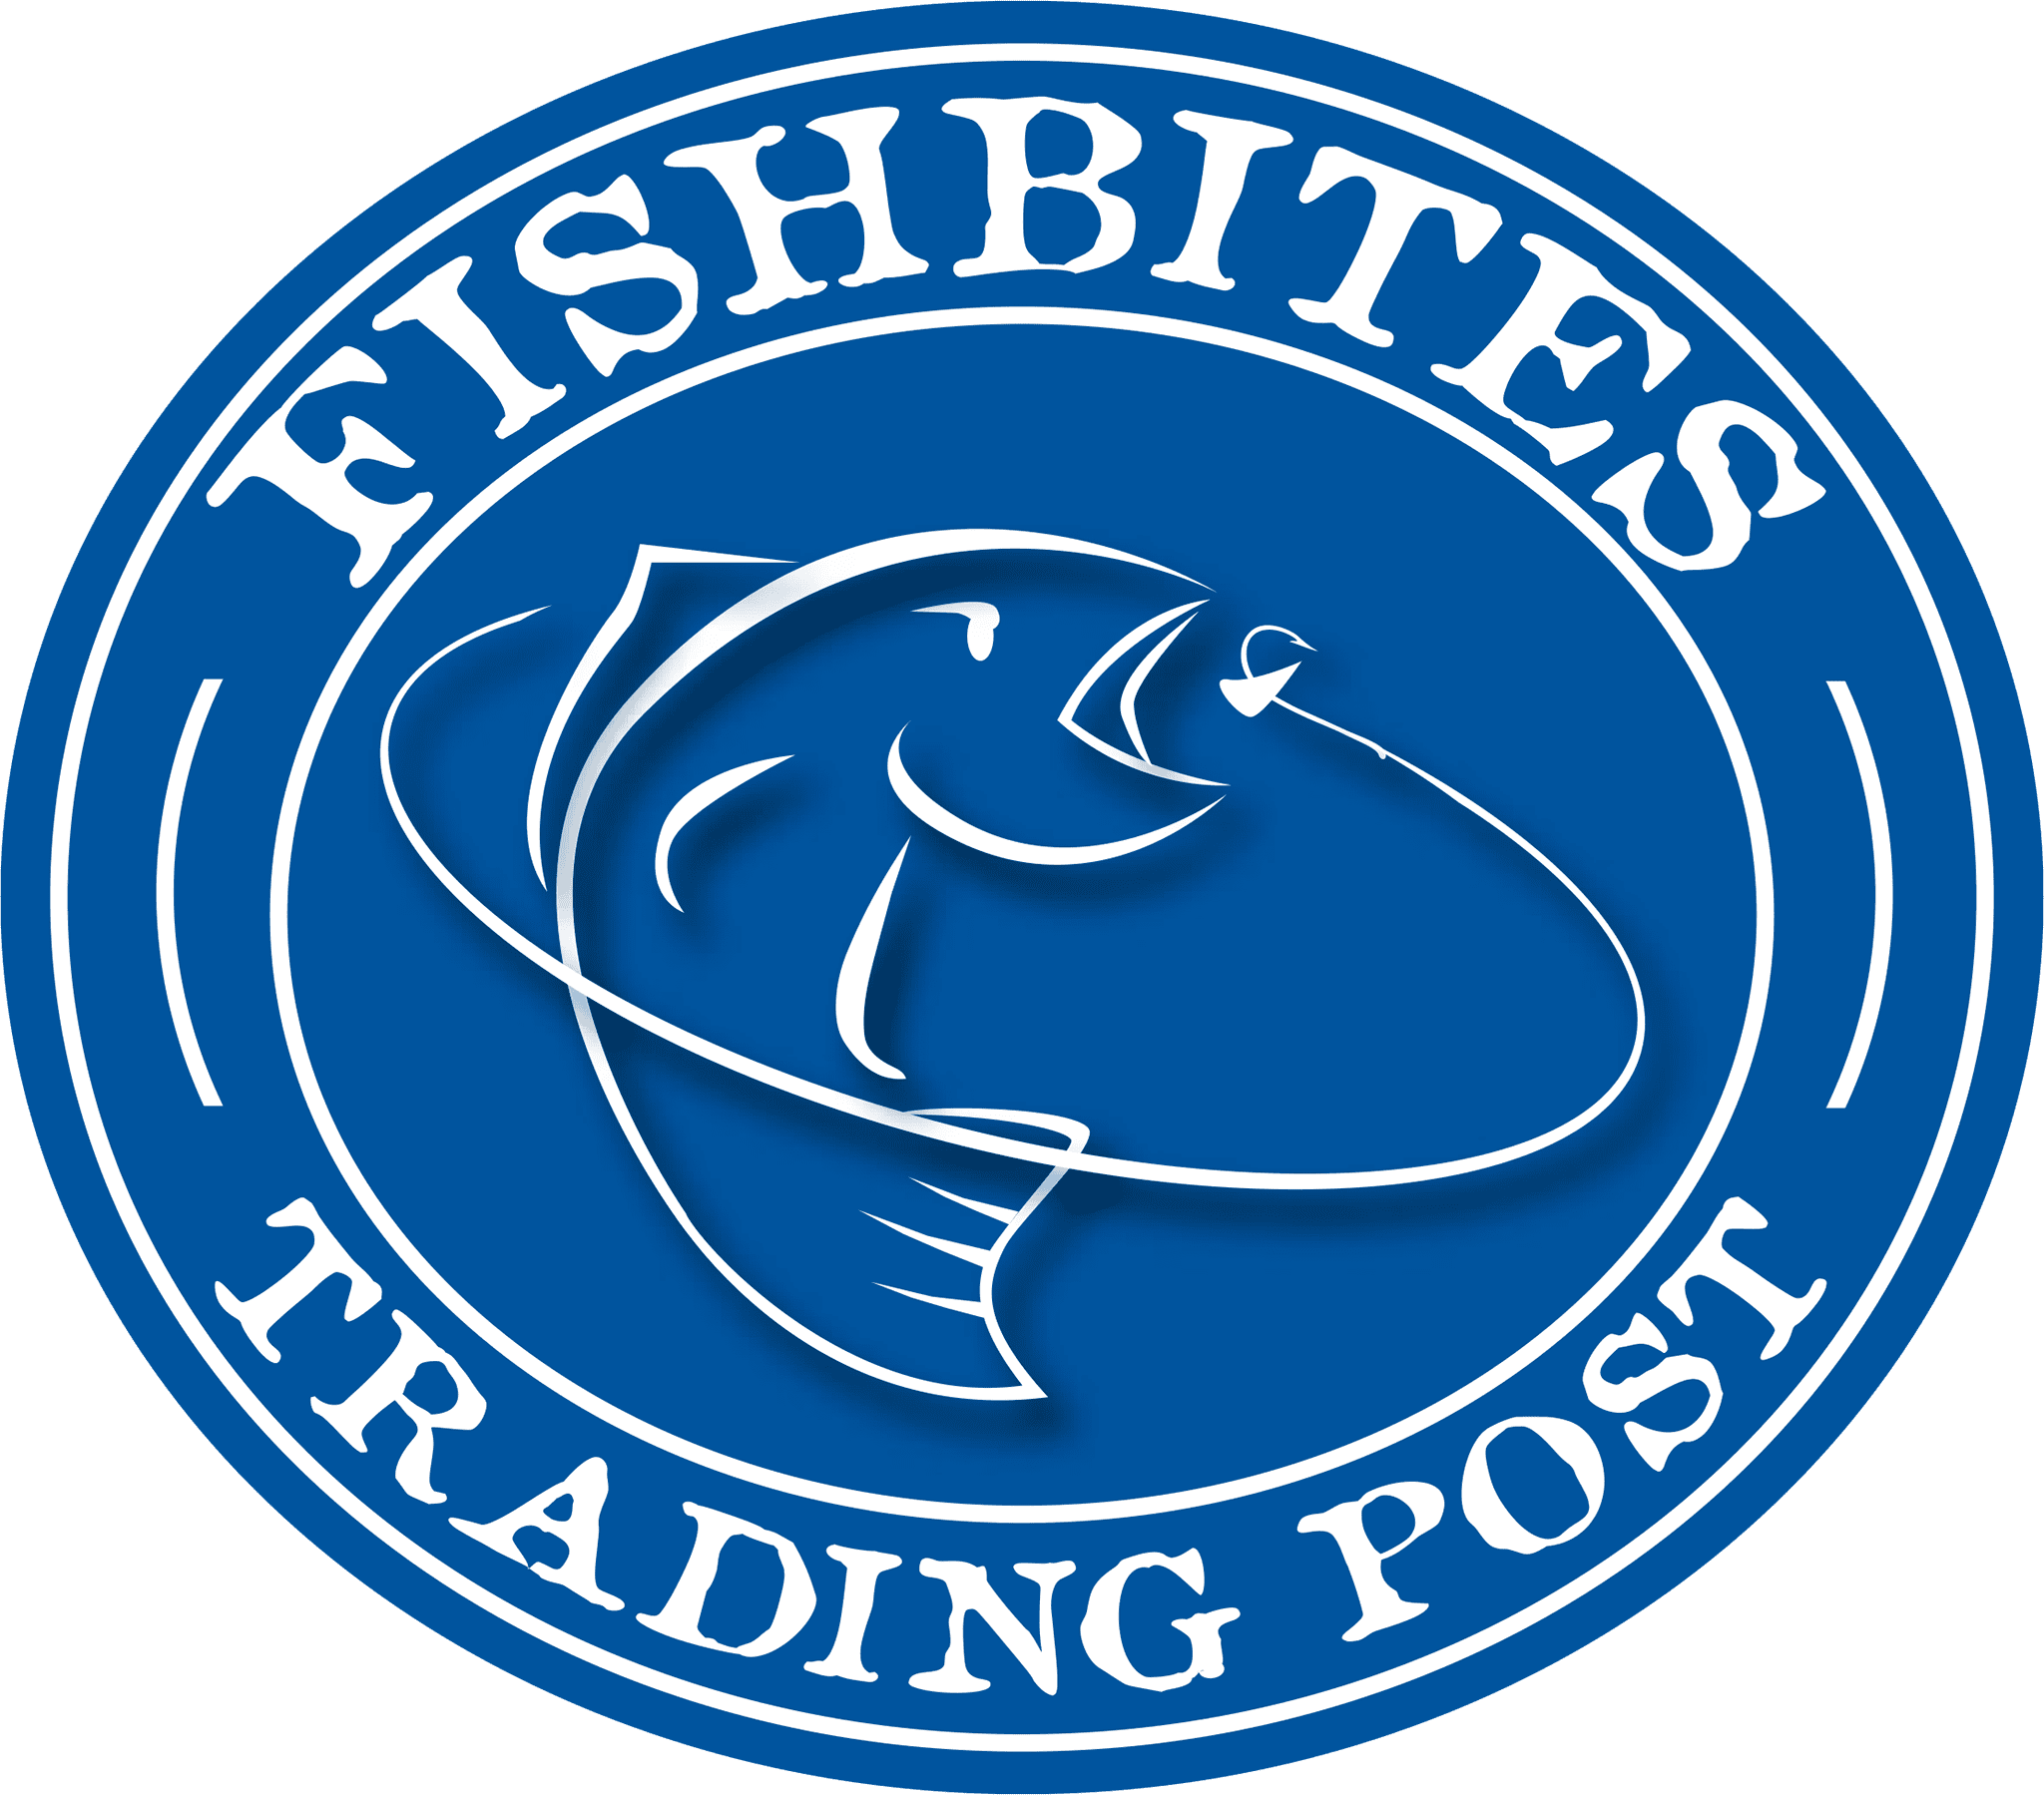 Fishbites Trading Post